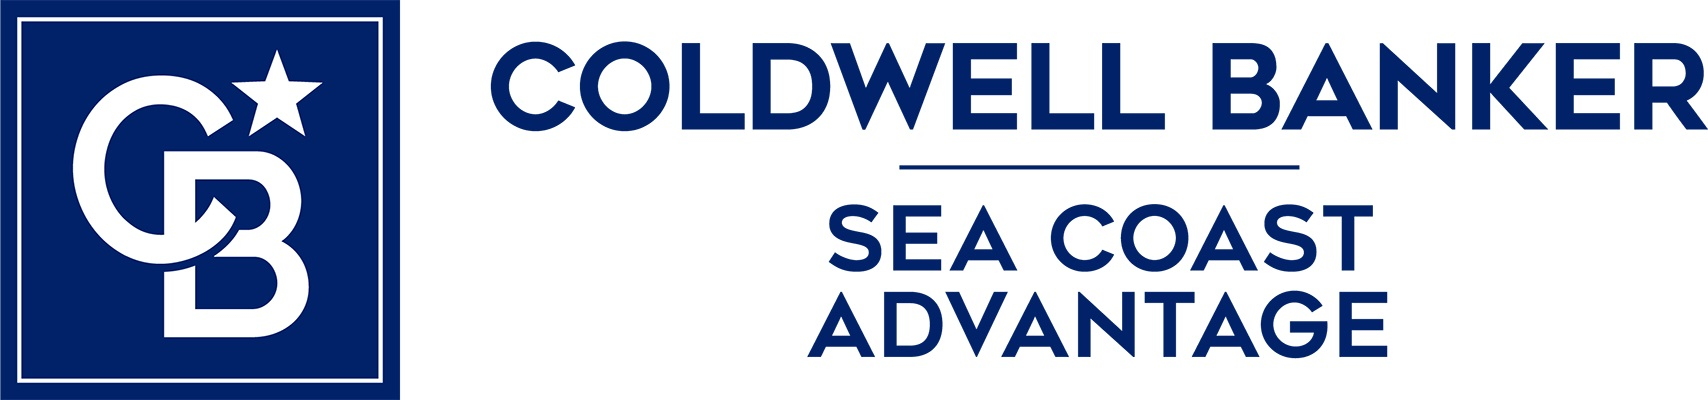 Matt Dickens - Coldwell Banker Sea Coast Advantage Realty